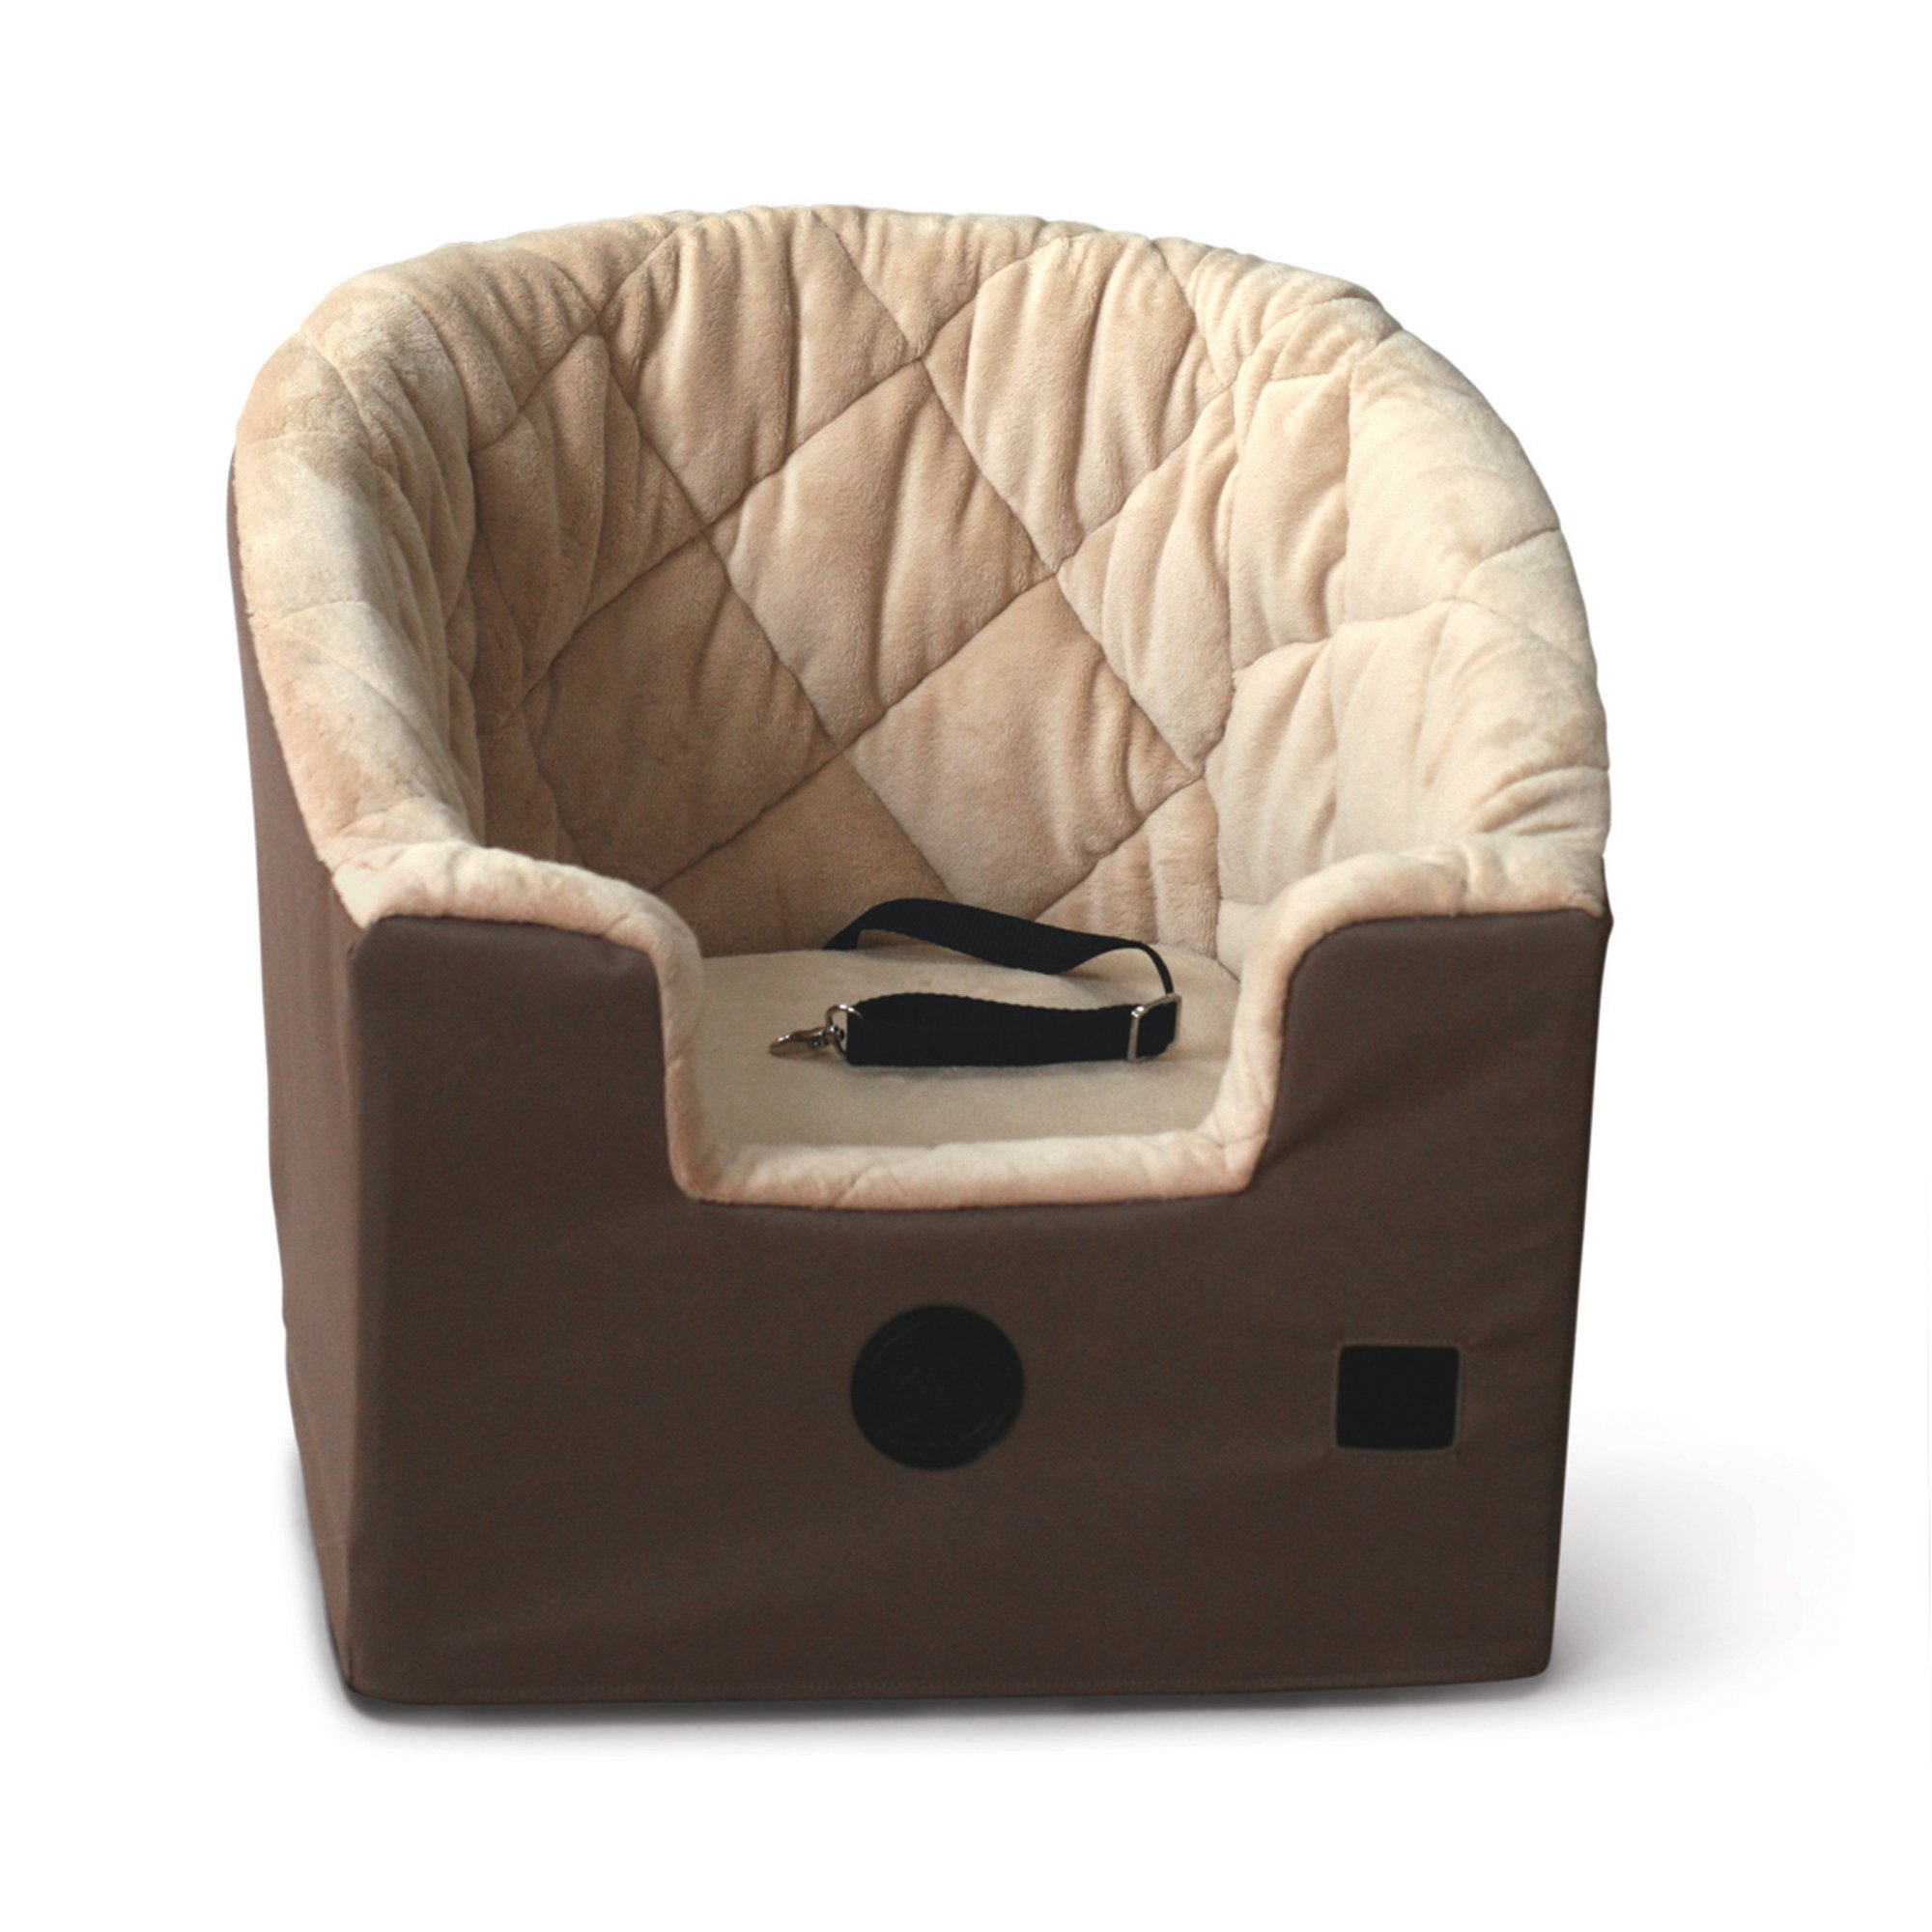 K&H Pet Products Bucket Booster Pet Seat Large Tan 14.5'' x 24''